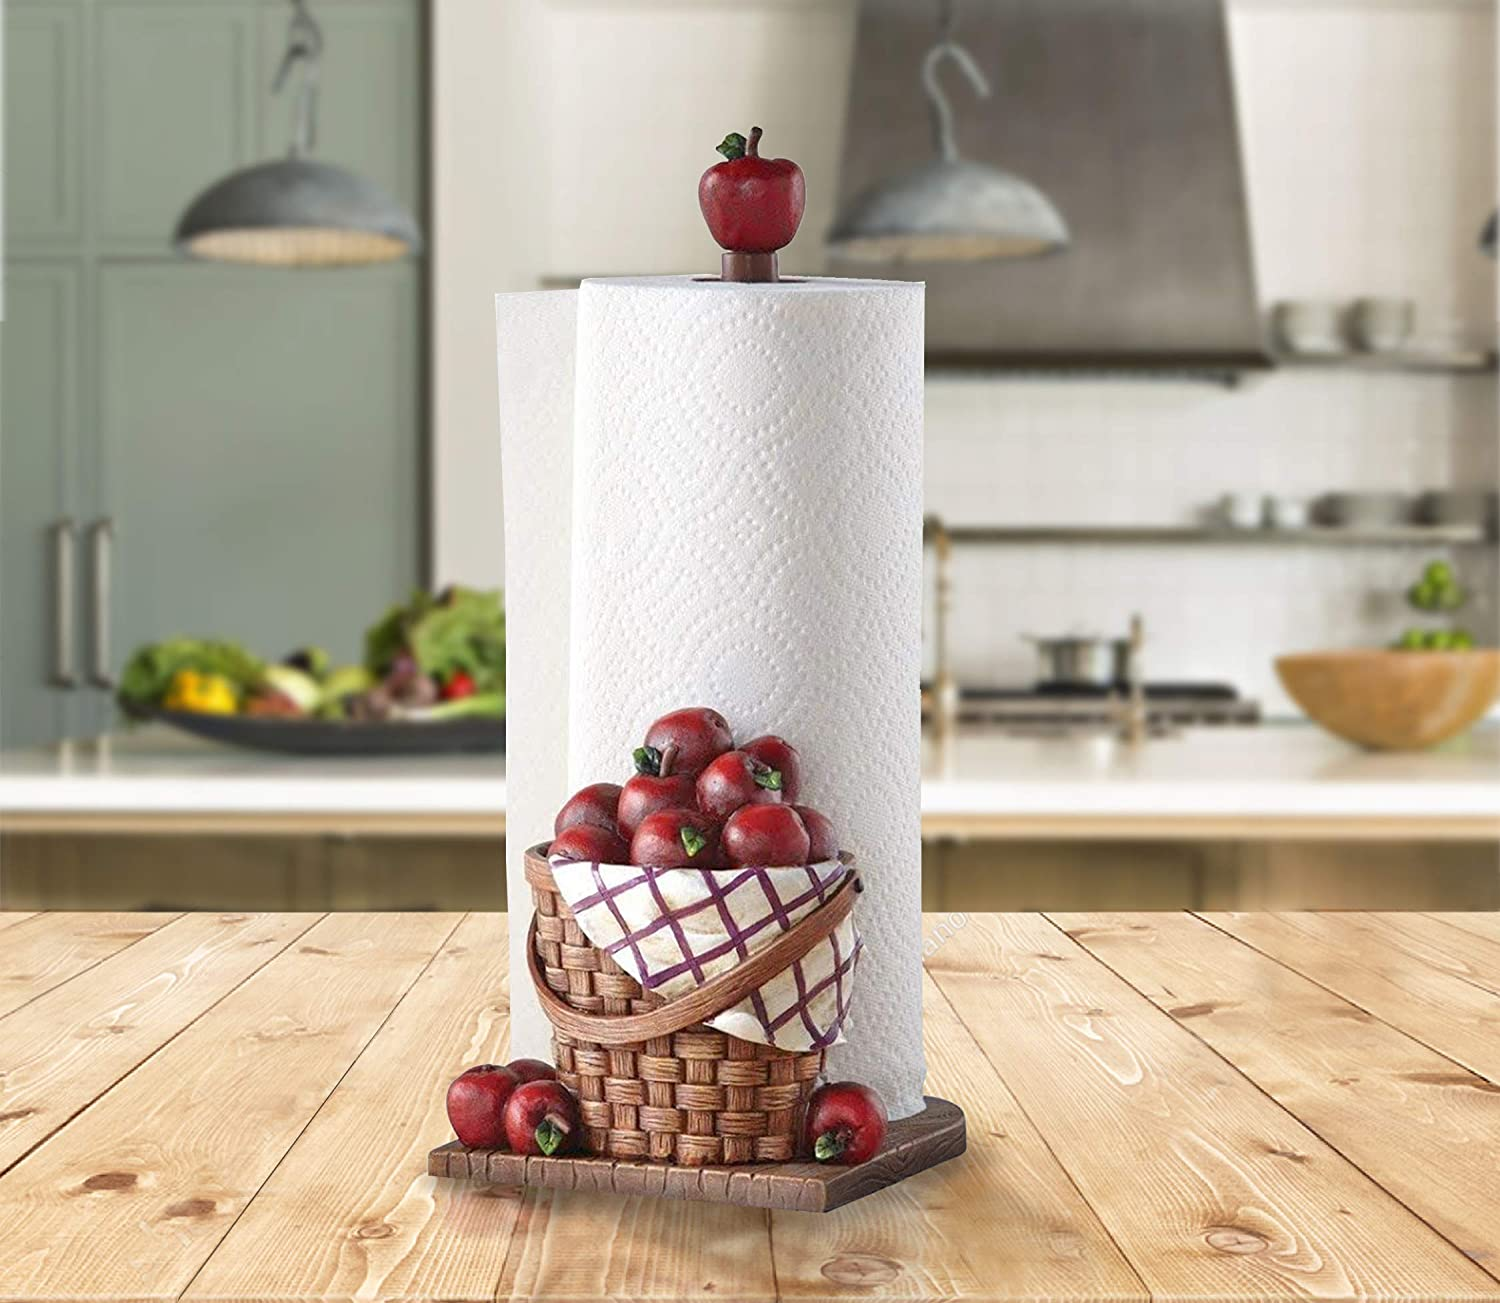 Decorate Your Kitchen With An Elegant Hand Painted Paper Towel Holder (Red Apple Basket)